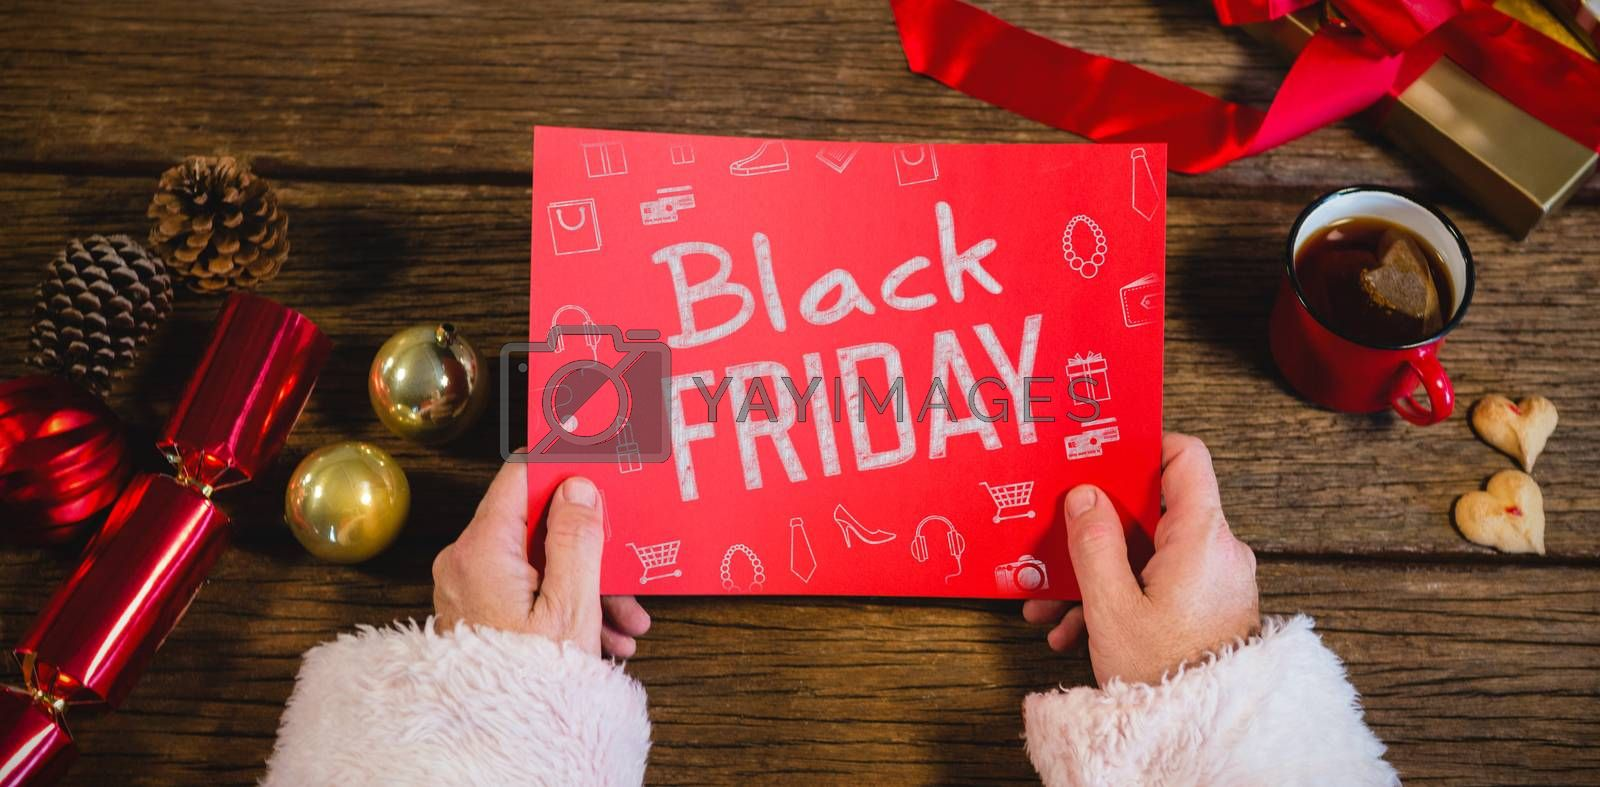 Black friday advert against santa claus holding blank red paper